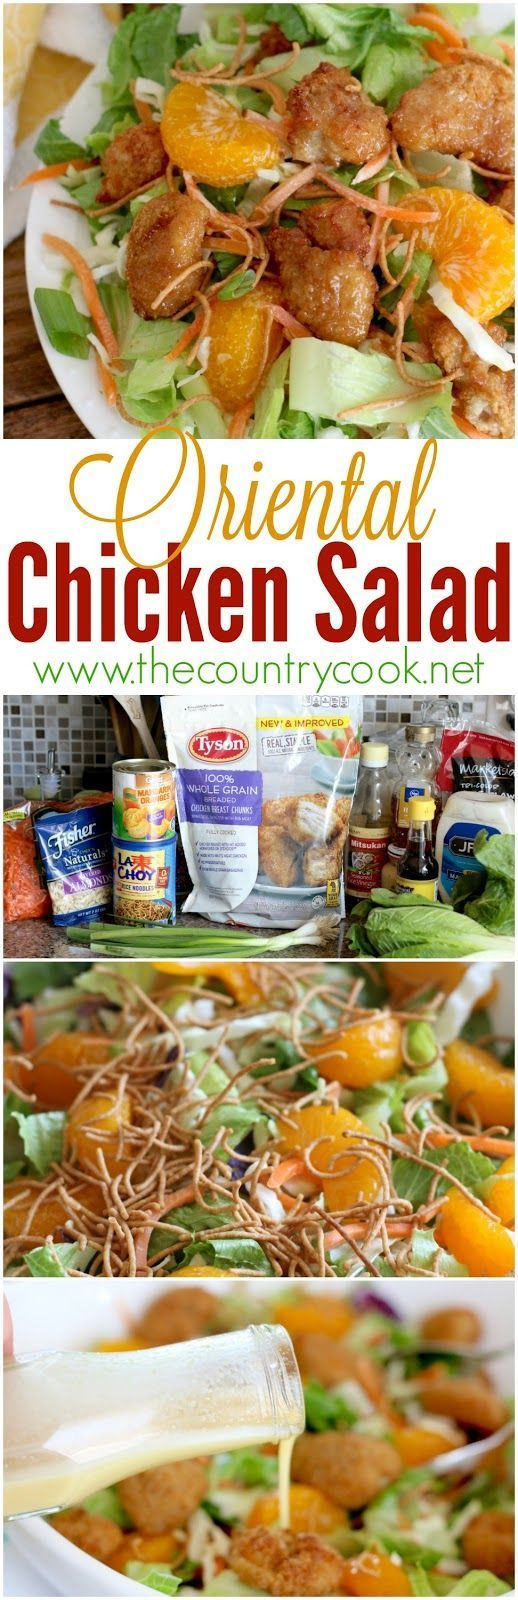 Oriental Chicken Salad recipe from The Country Cook. Just like the one at your favorite restaurant! It's made so easy with Tyson 100% Whole Grain chicken! The dressing is AMAZING. I could eat it on everything! I am in love with making this at home now! #ad